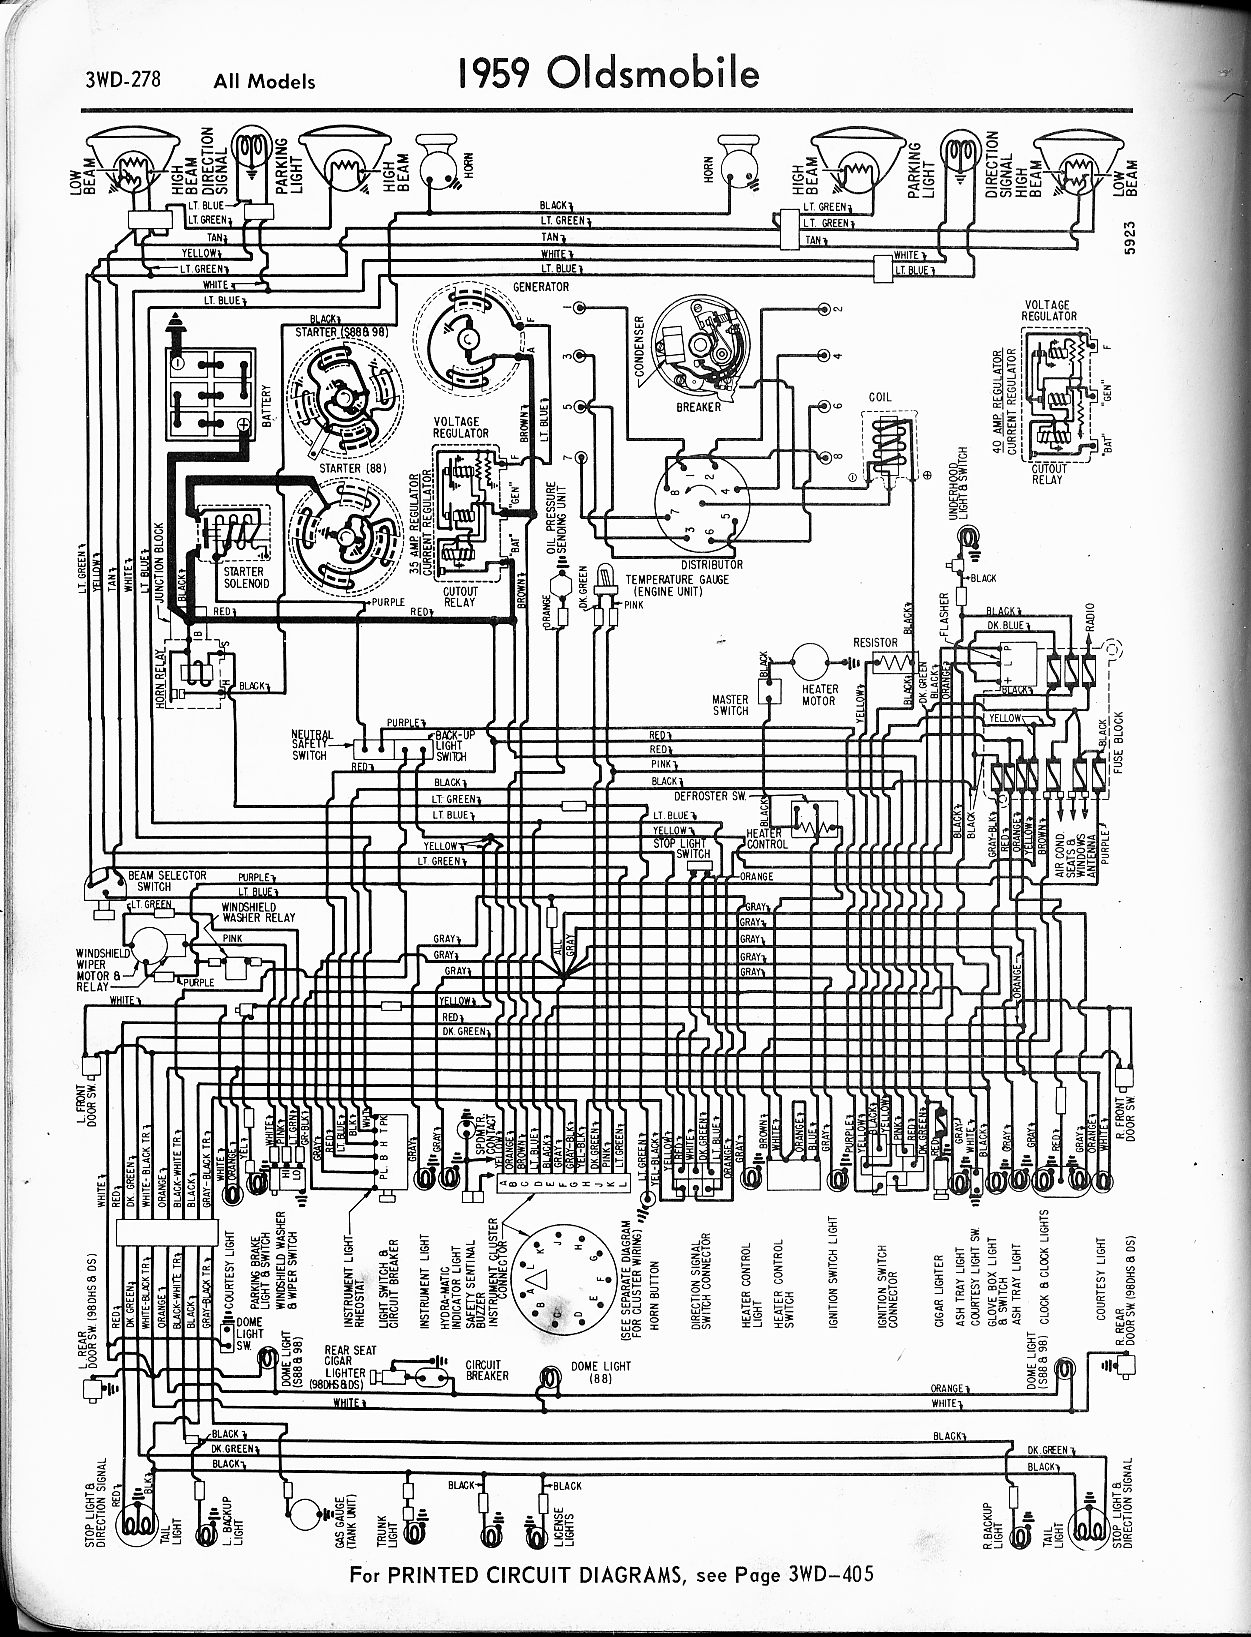 [DIAGRAM_38IS]  Oldsmobile wiring diagrams - The Old Car Manual Project | Wiring Diagram Oldsmobile 88 |  | The Old Car Manual Project